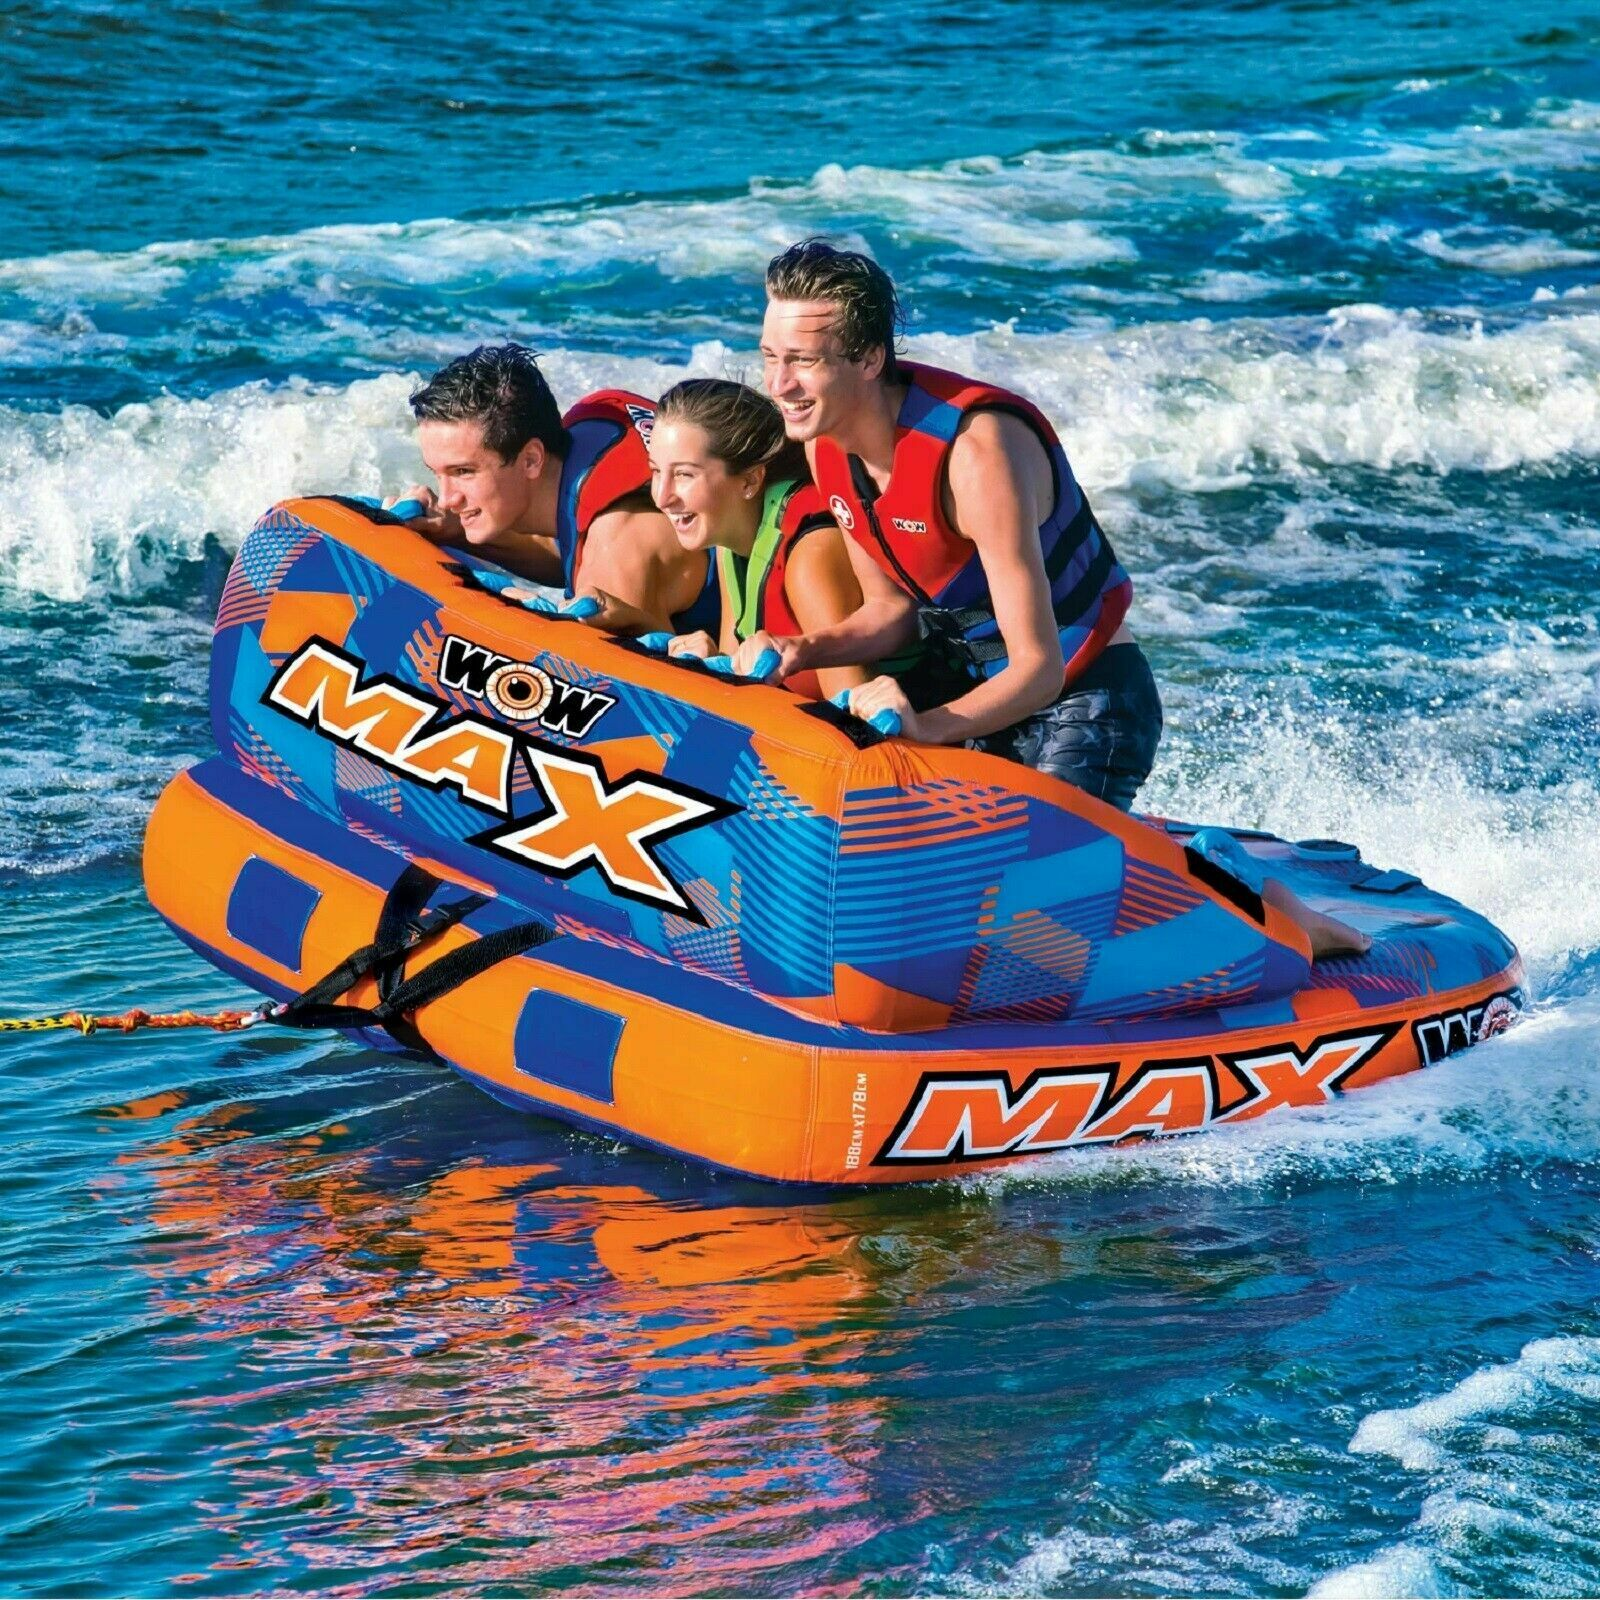 Image 2 - WOW MAX 1, 2 or 3 Person Inflatable Towable Tube Boat Water Raft Float FAST SHIP